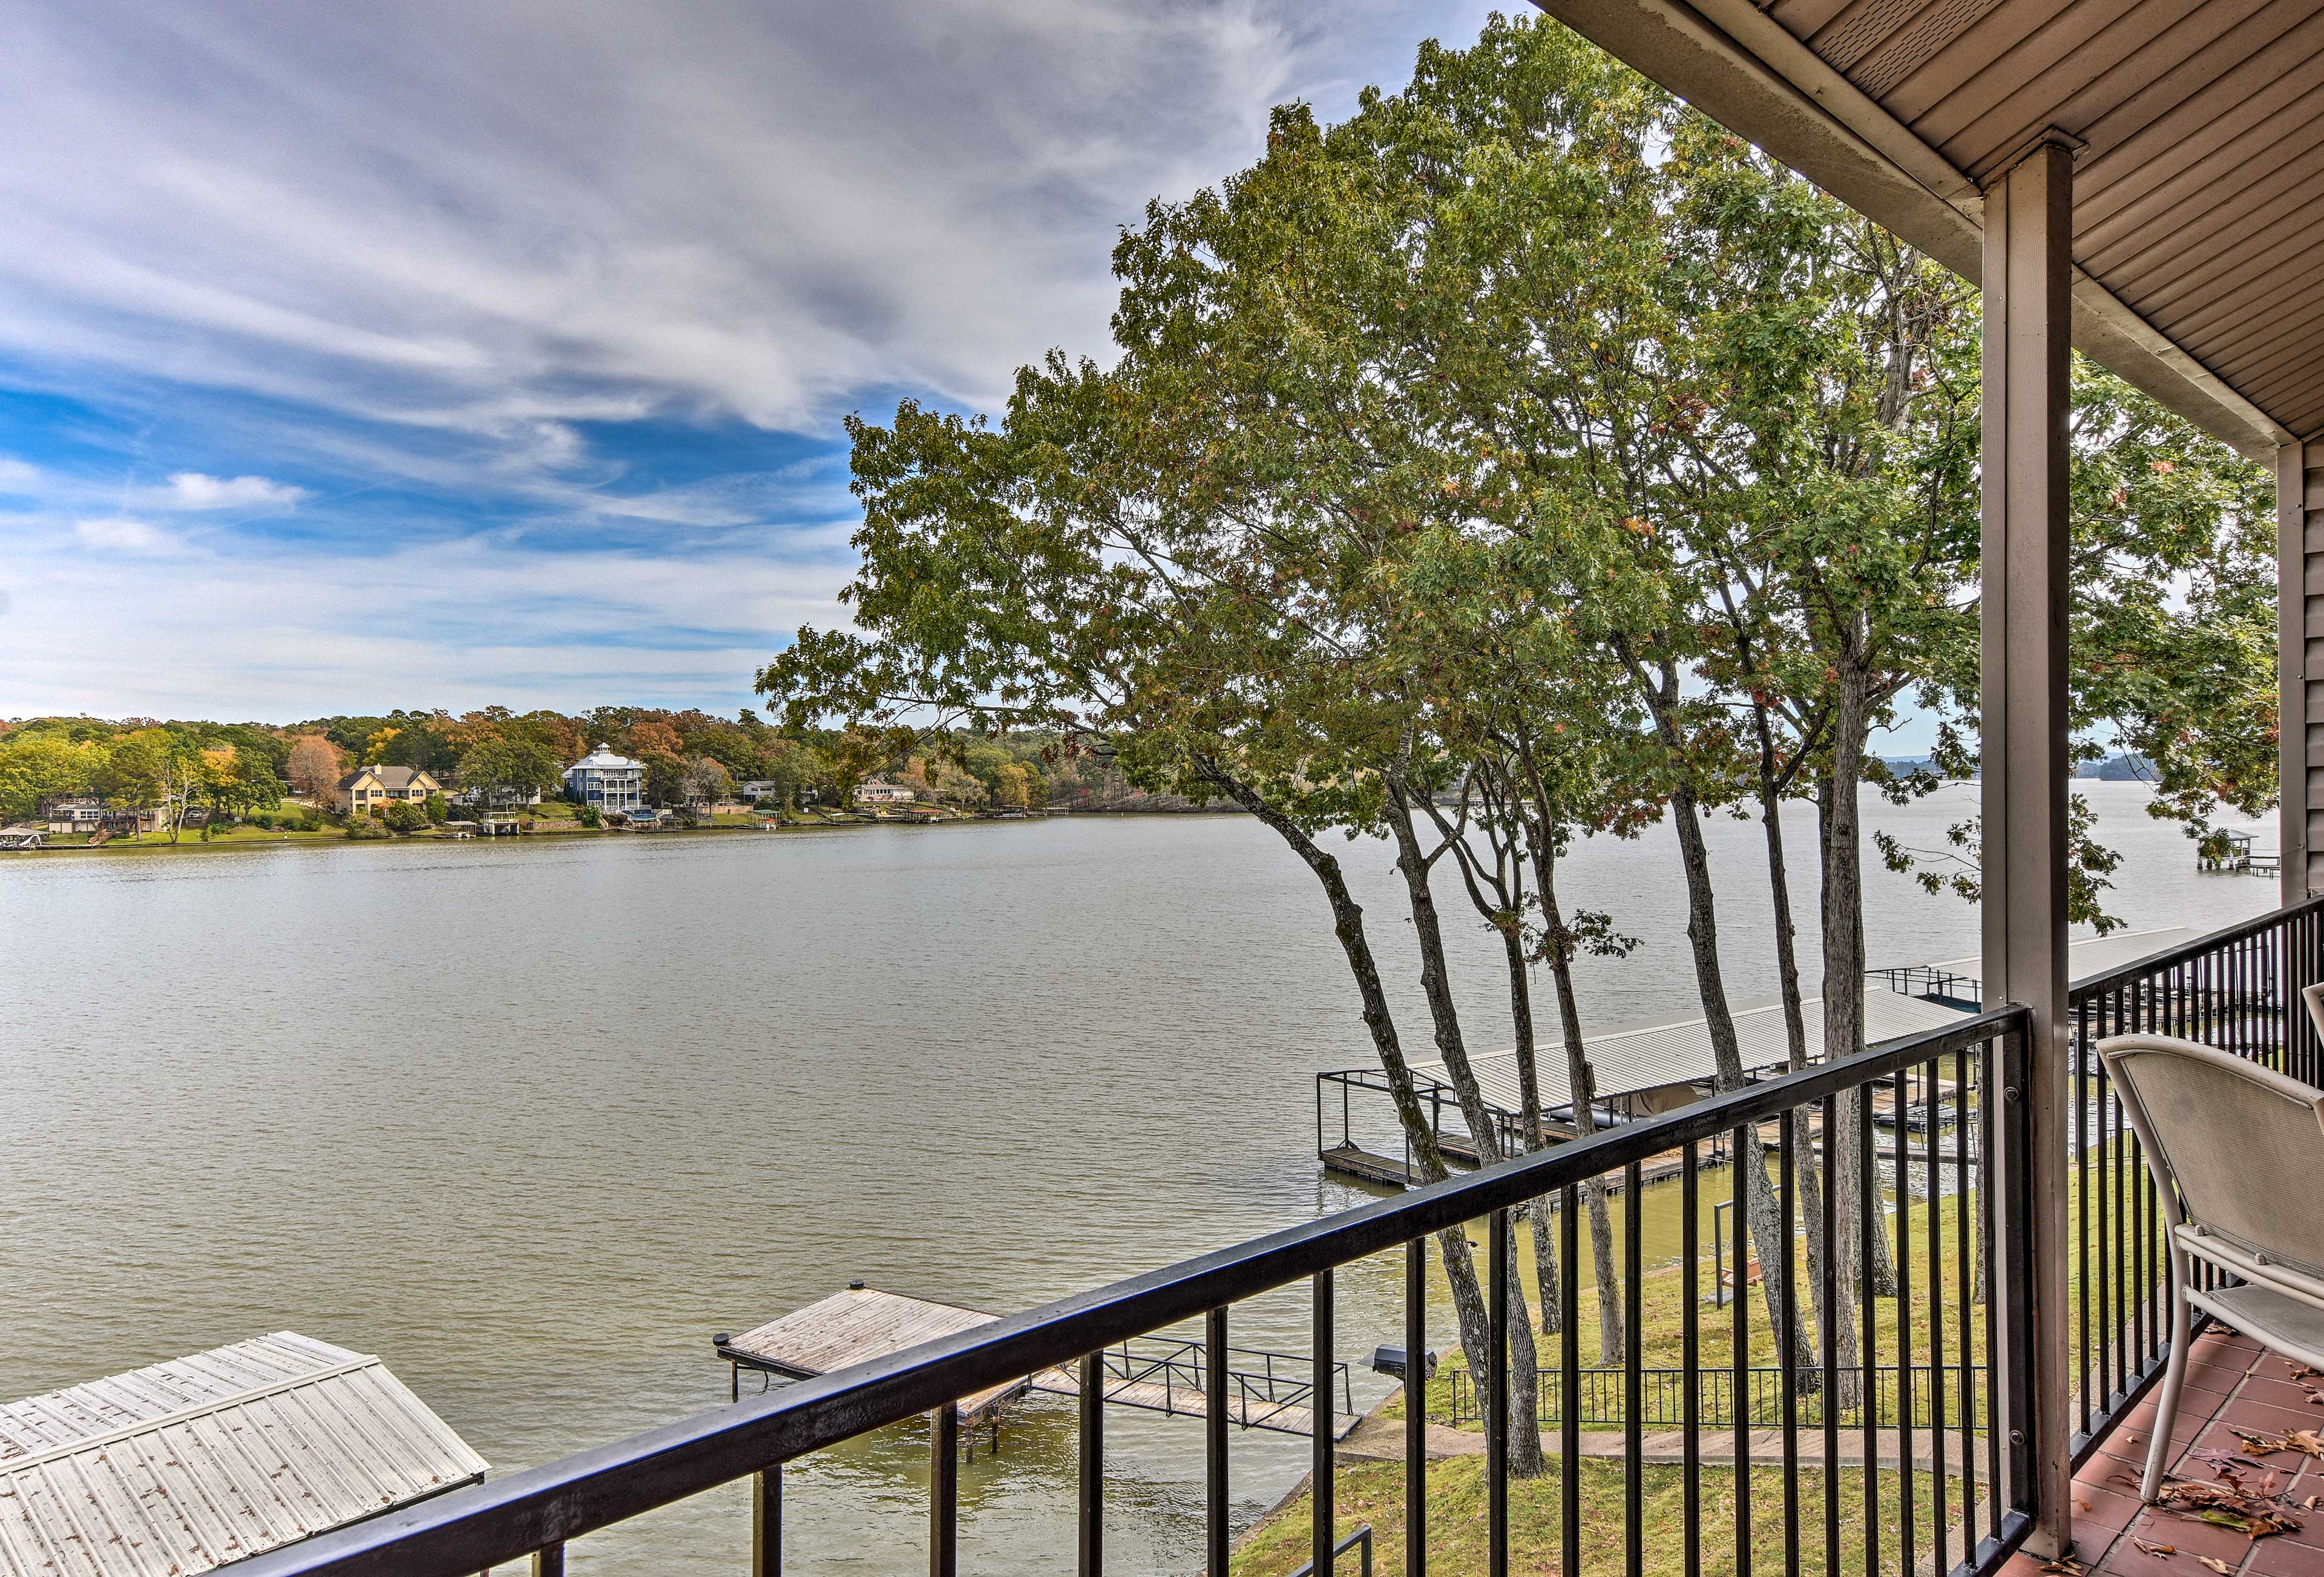 Take in the beautiful views of the Ouachita River.